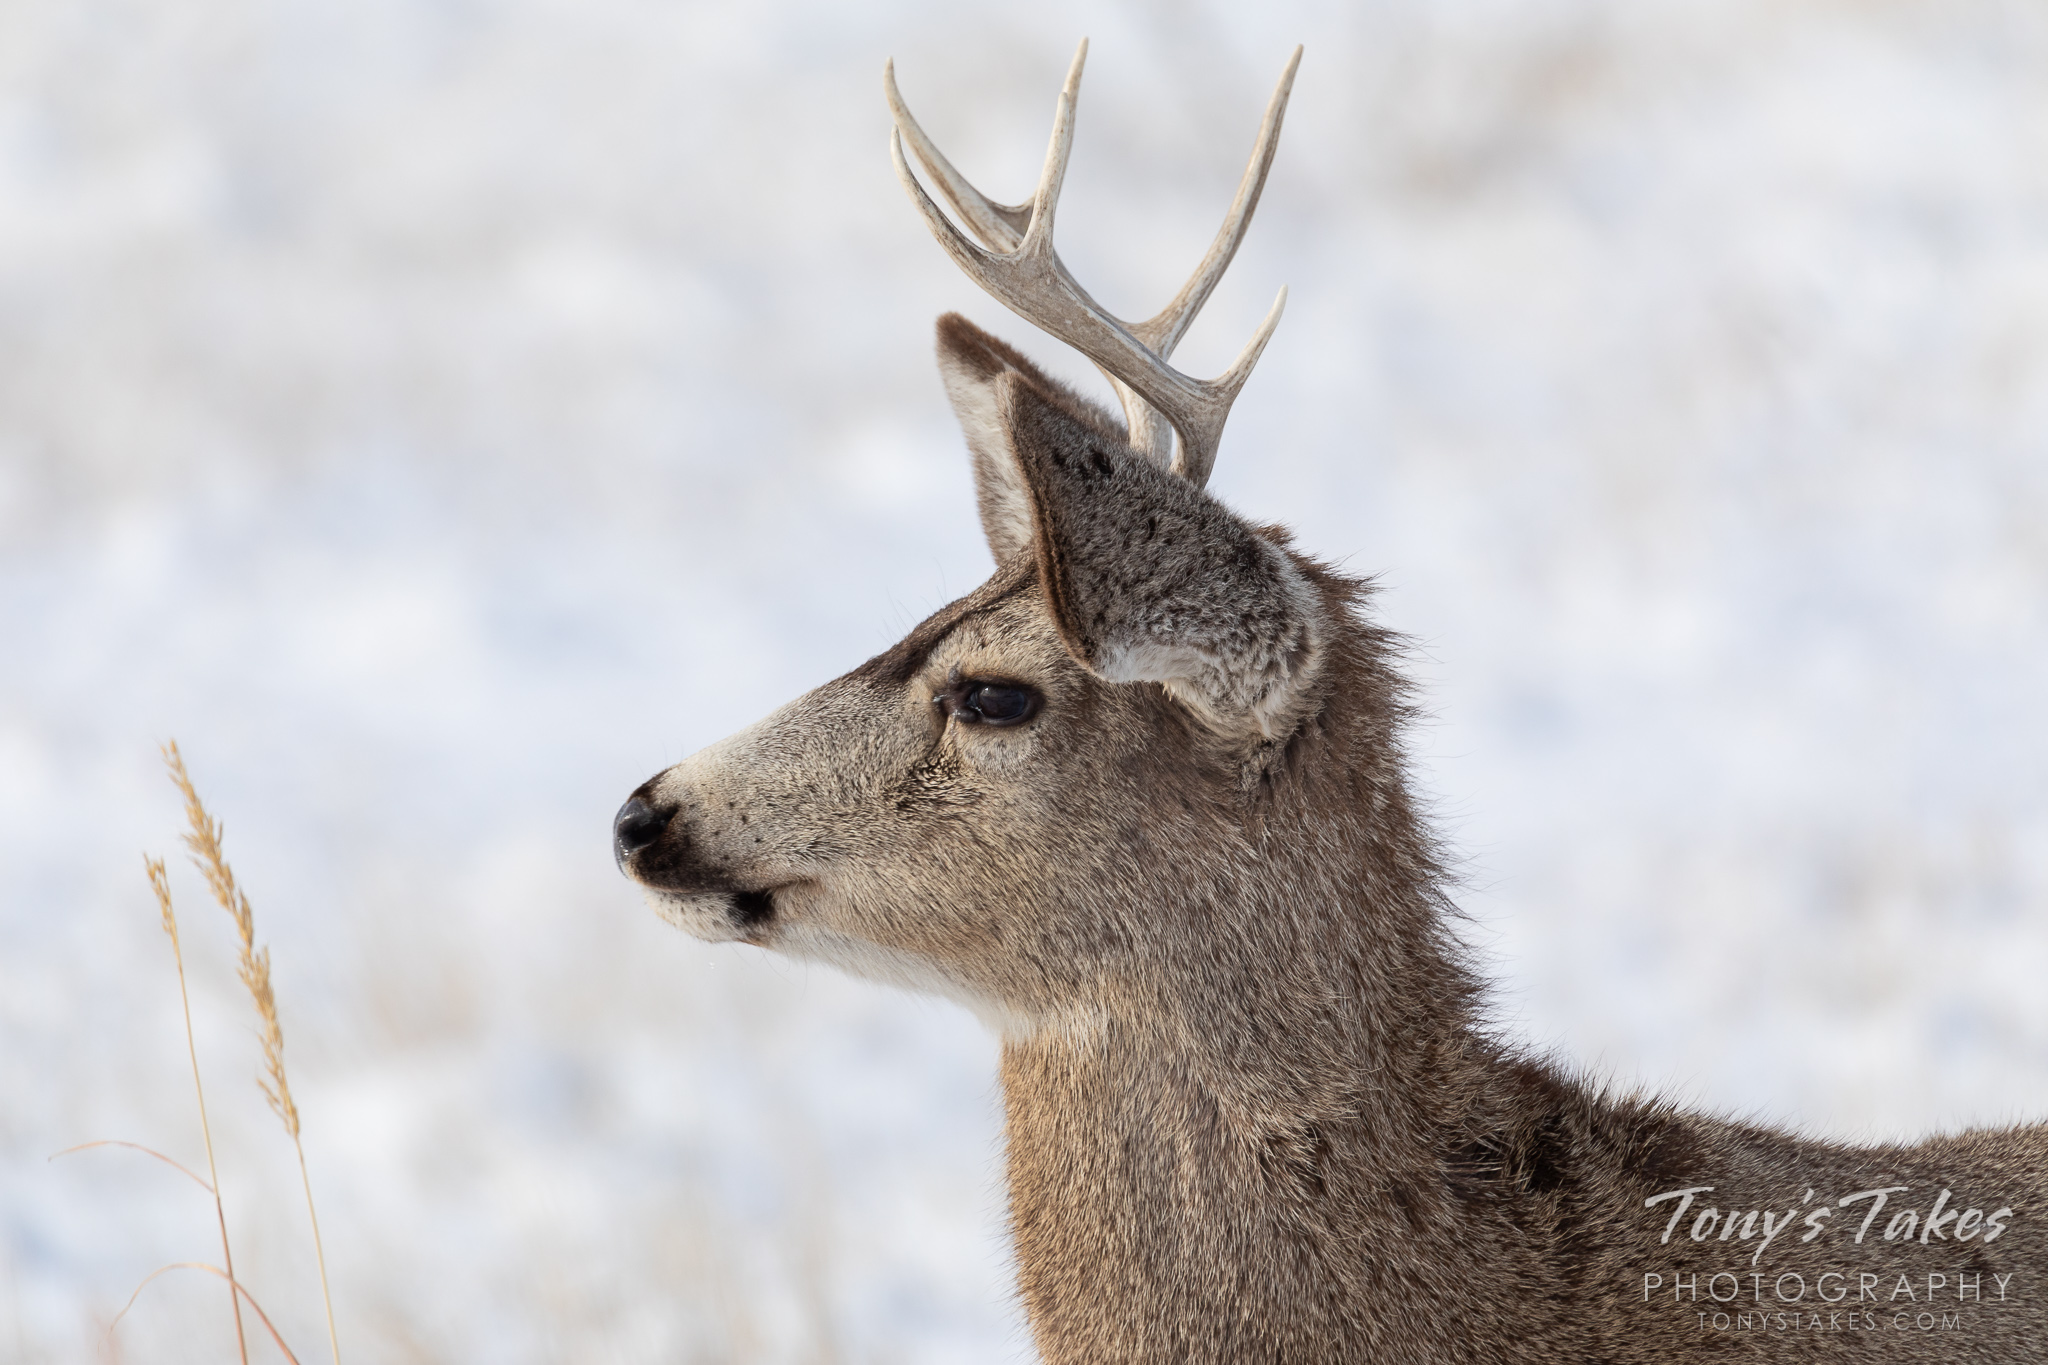 A young mule deer buck keeps watch on nearby coyotes. (© Tony's Takes)